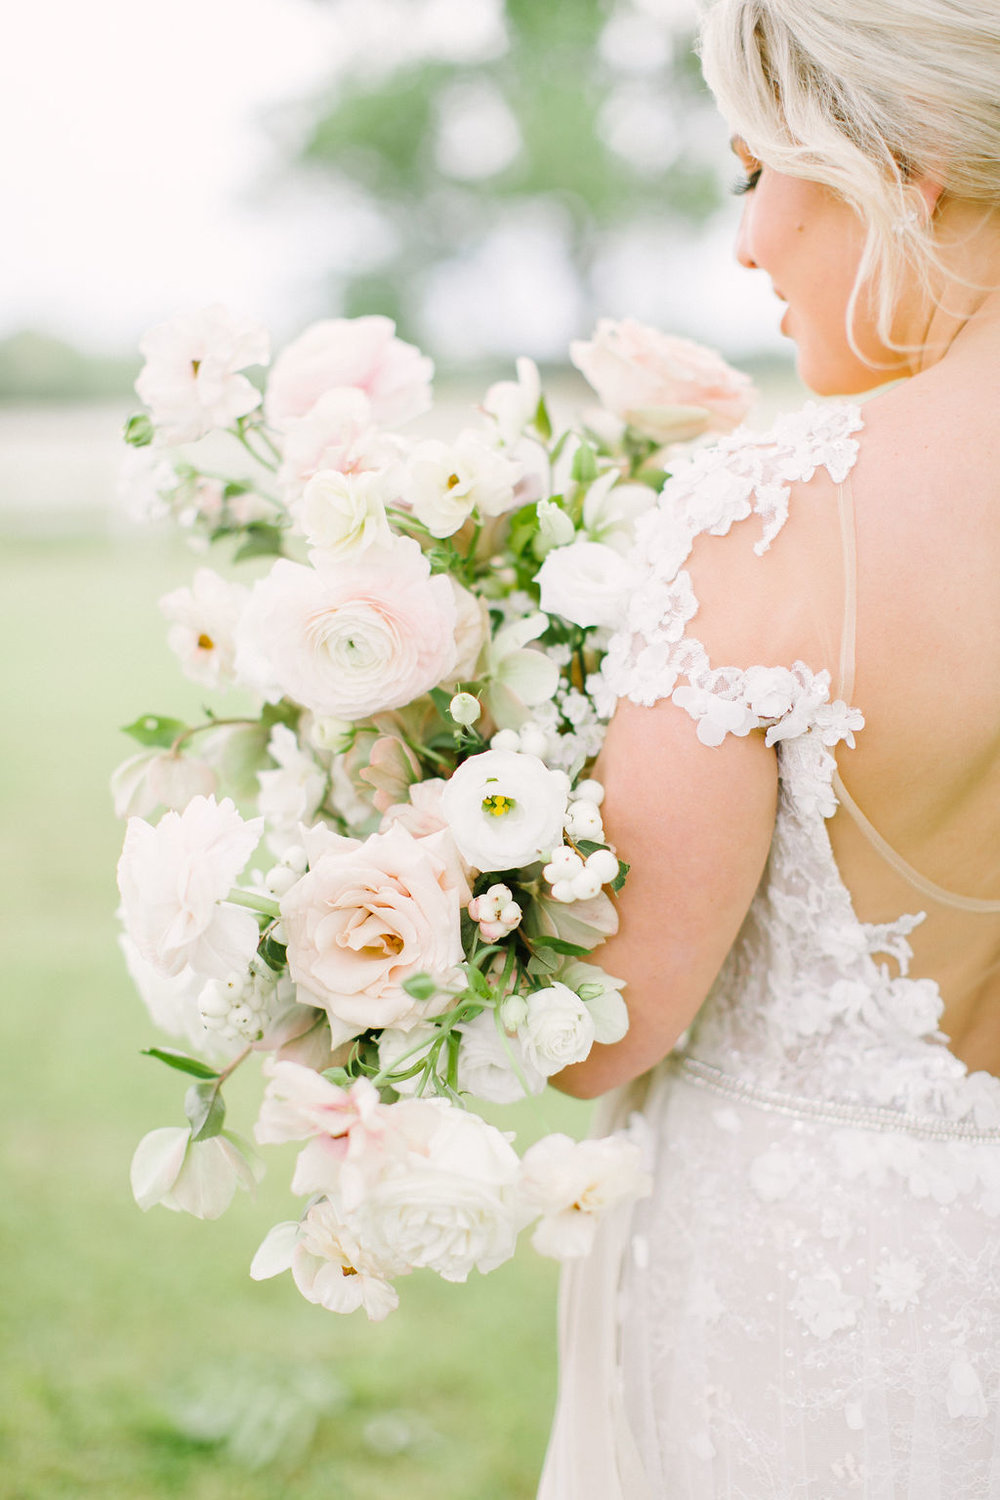 Bridal bouquet with blush and white flowers in a garden style by Maxit Flower Design. Photographed by Kate Elizabeth. Styled by Shannon Ducker